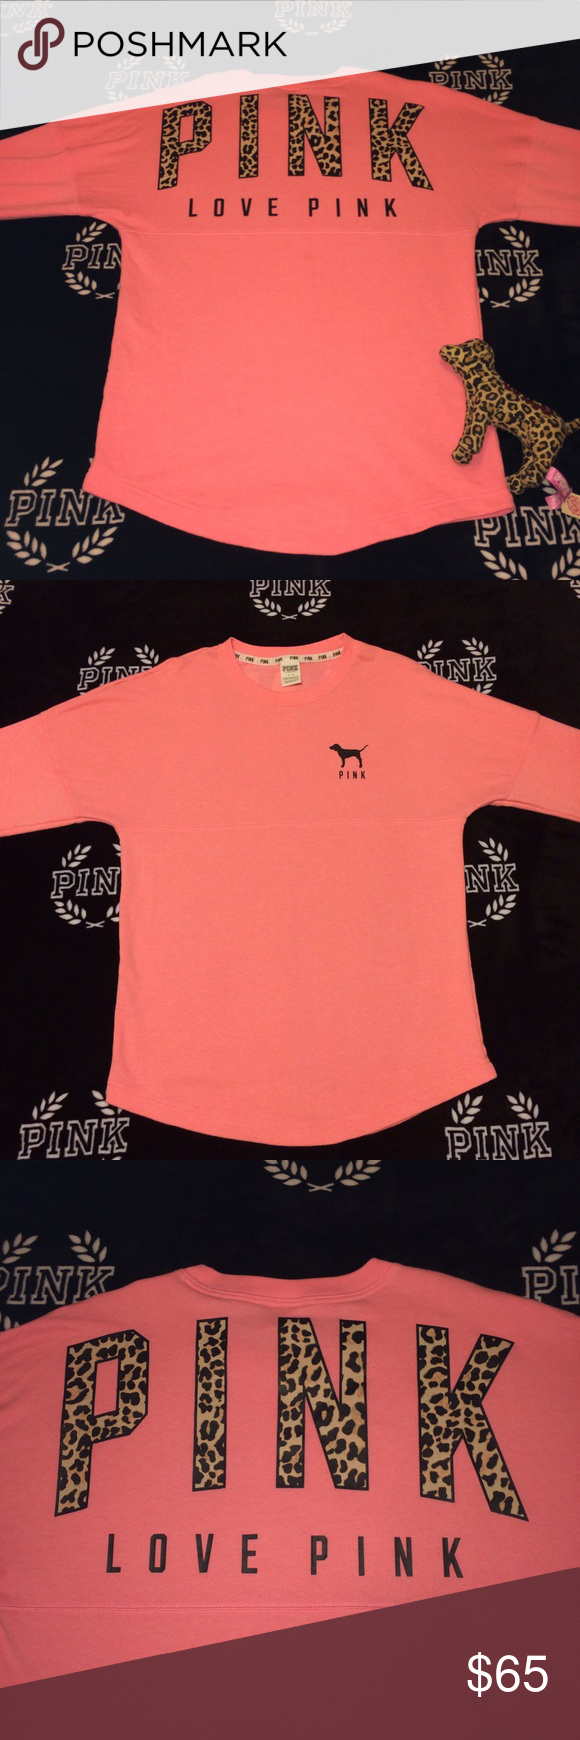 vs pink | ✨ Coral Cheetah Crew ✨ RARE EUC Coral Cheetah Crew. NO stains or holes. Slight pilling. Still has TONS of life left! Let me know if you have any questions! ✨ ** dog not included PINK Victoria's Secret Tops Tees - Long Sleeve